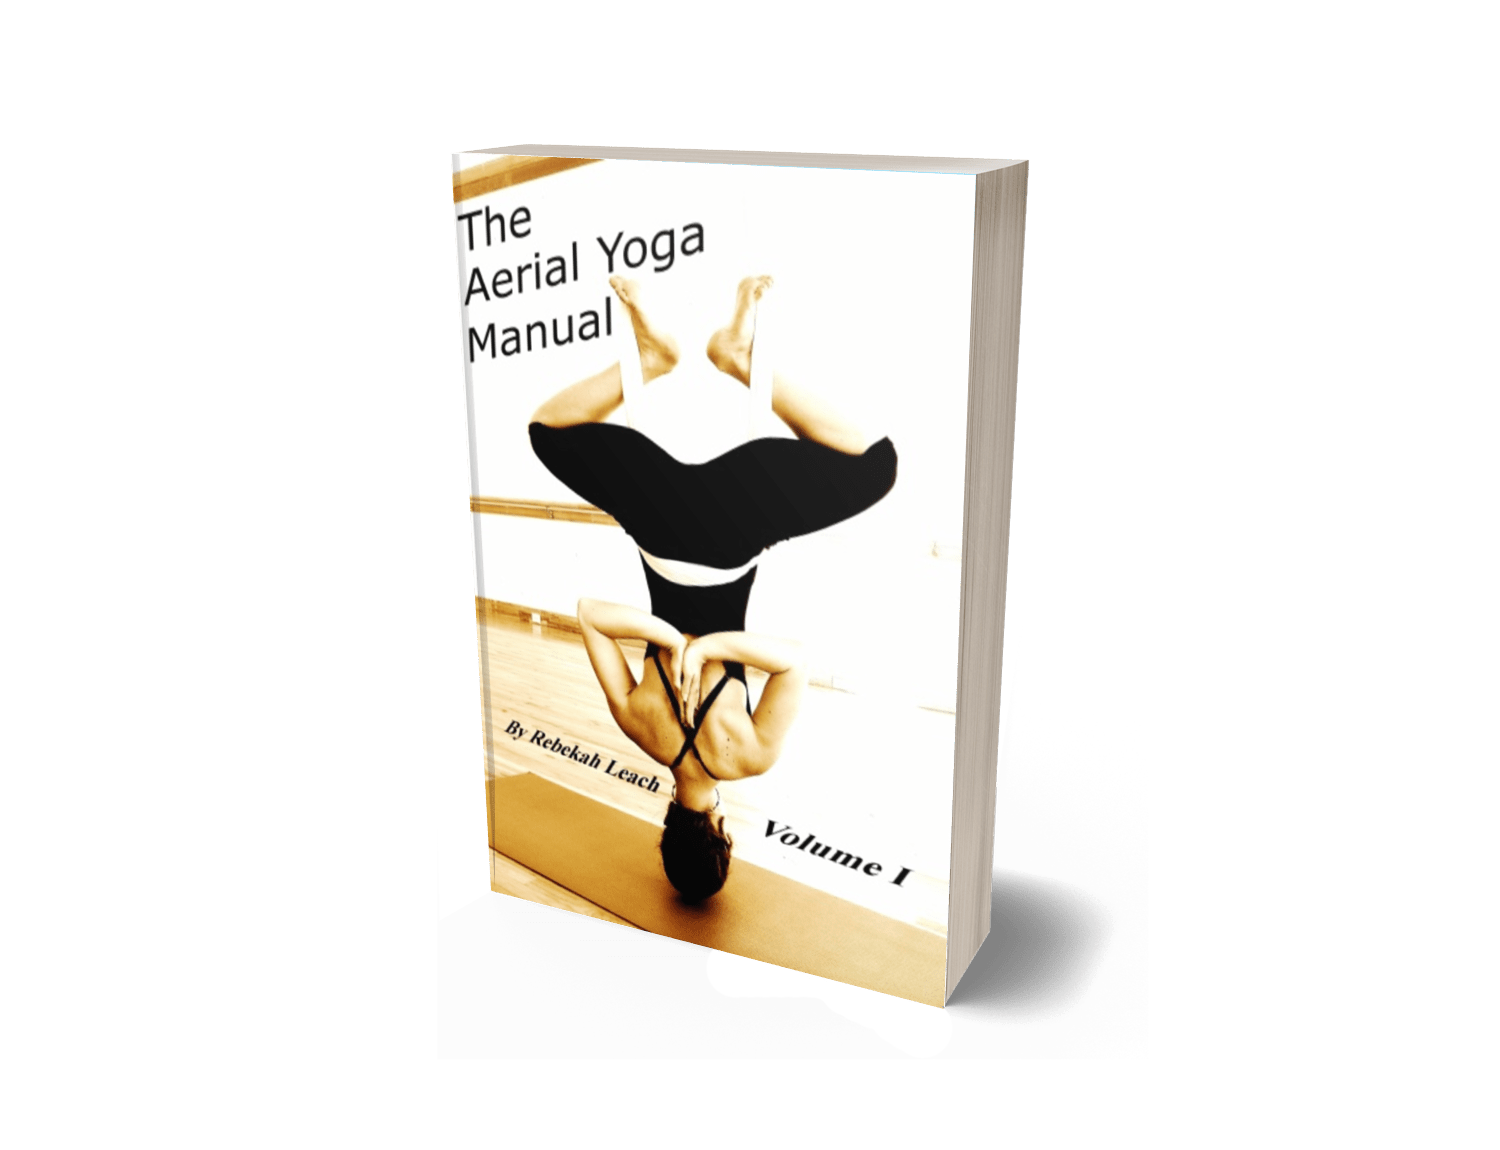 The Aerial Yoga Manual Volume 1